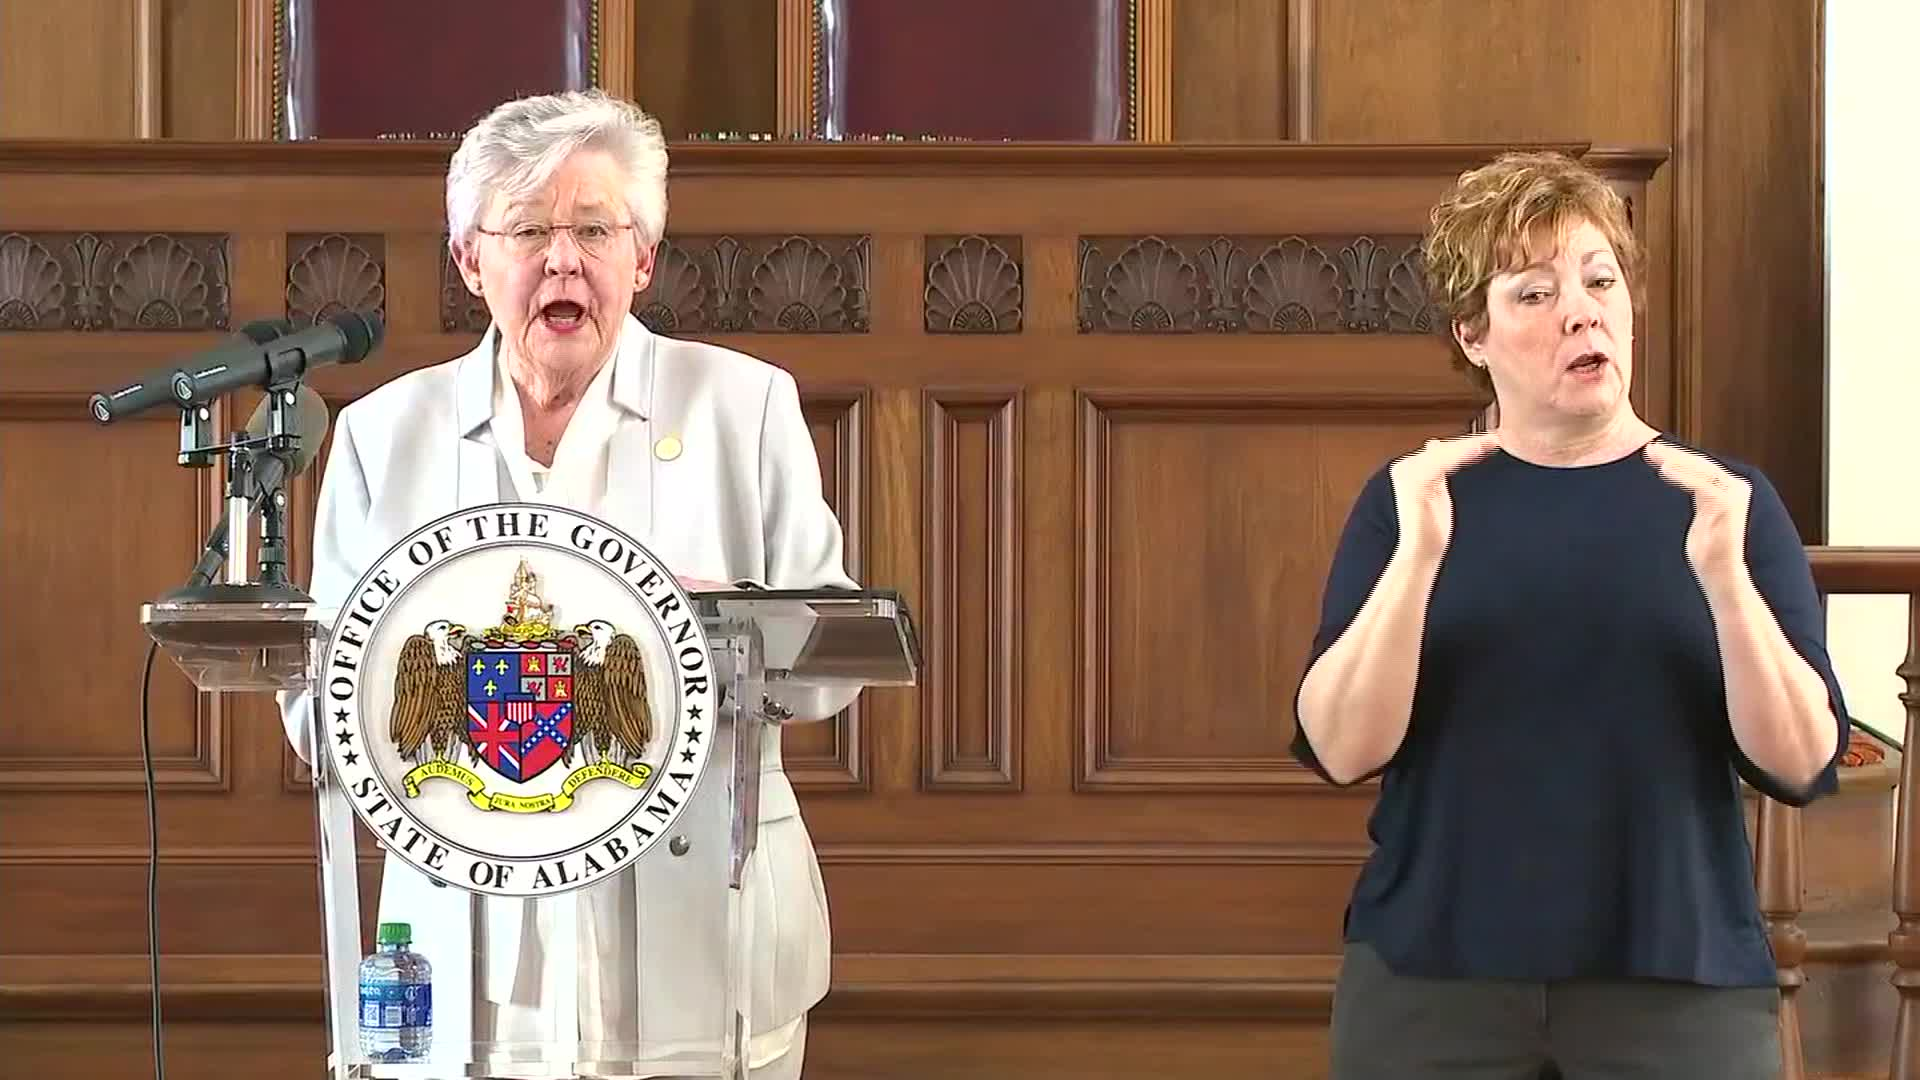 Alabama Gov. Kay Ivey speaks during a press conference in Montgomery, Alabama, on May 21.